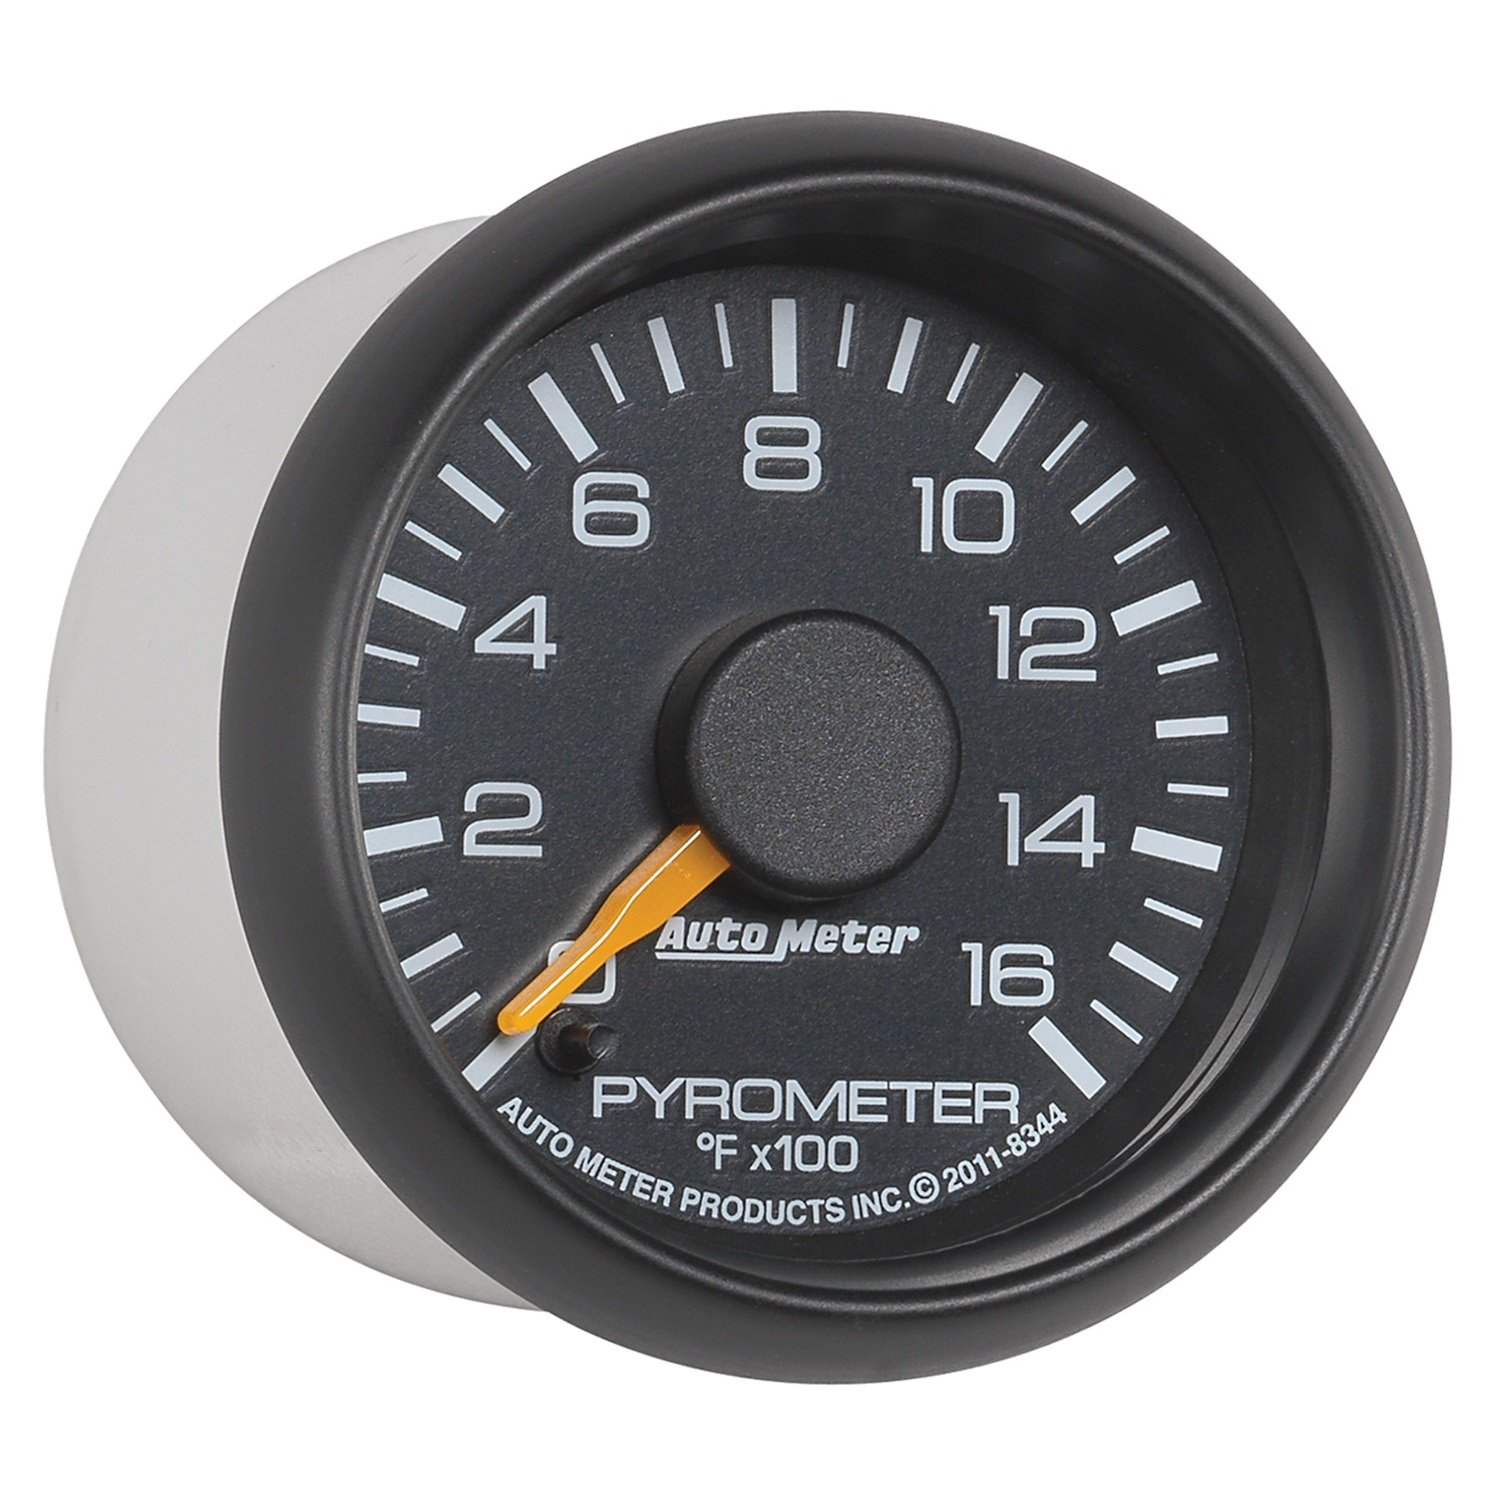 Auto Meter 8344 Chevy Factory Match Electric Pyrometer Gauge Kit by Auto Meter (Image #2)